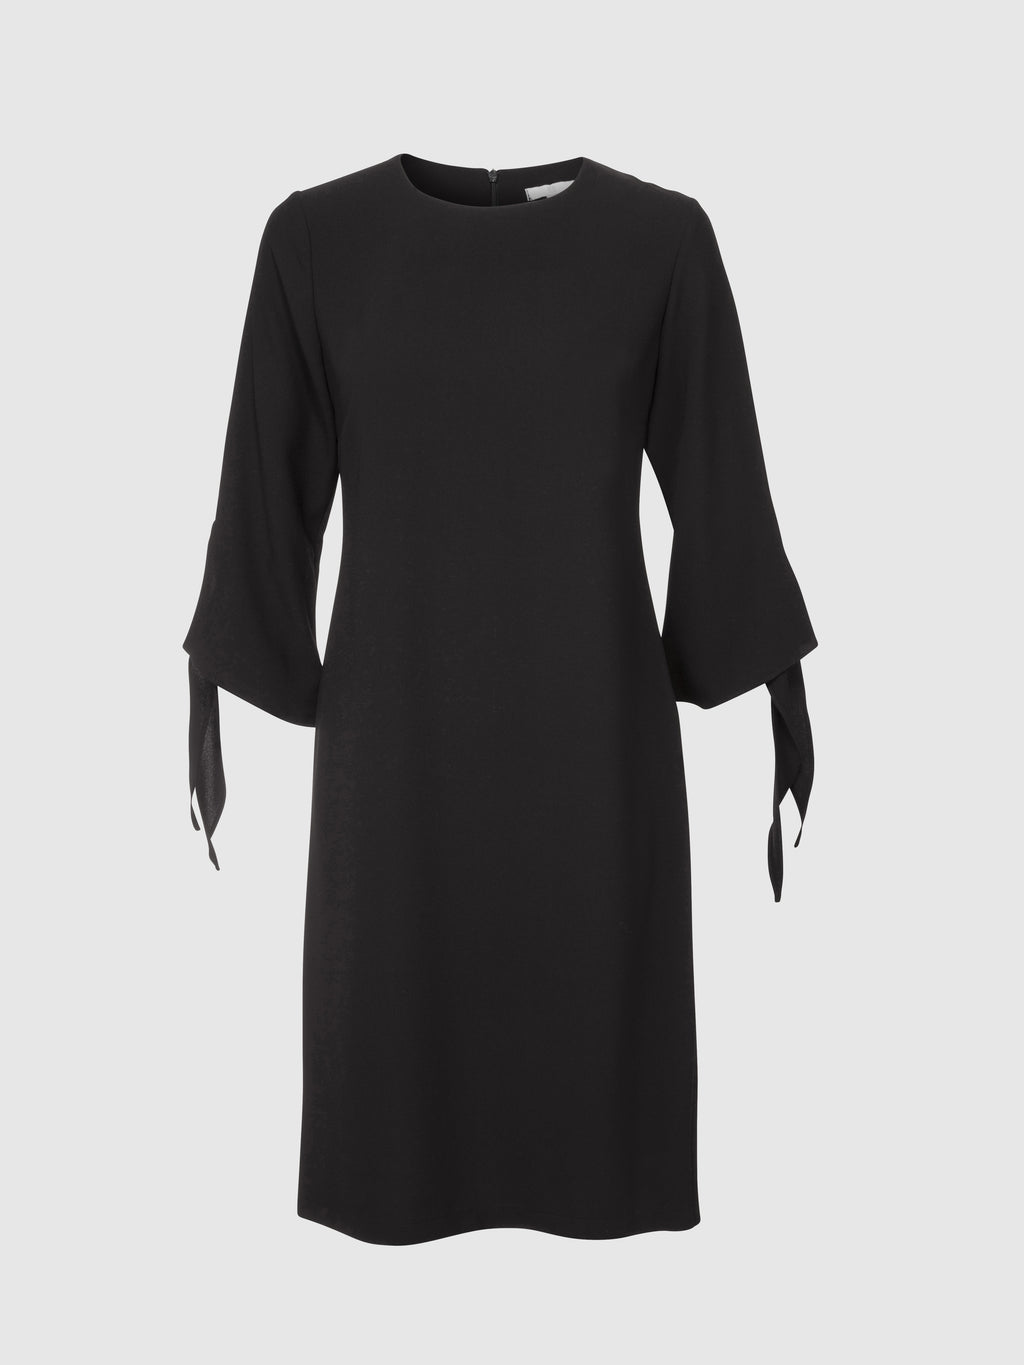 Front view of a knee length semi fitted round neck black crepe dress with a tie bell cuff shaped sleeve from the RÉZO women's collection